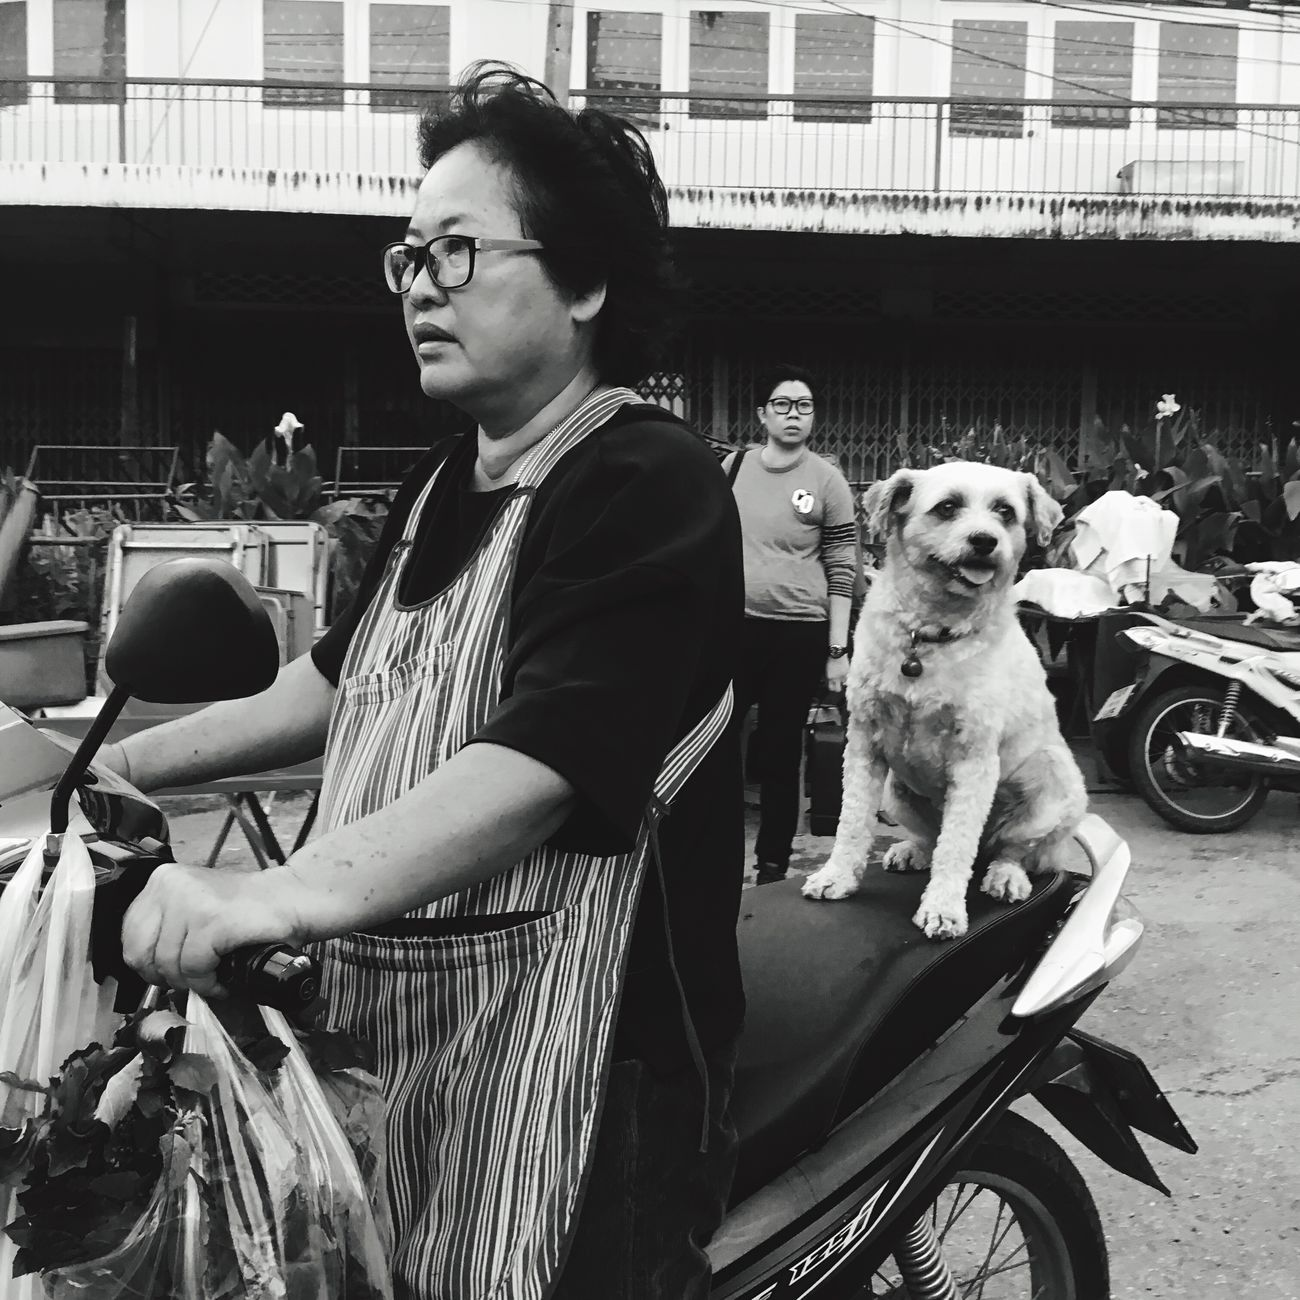 Dogs Dog Passenger Snap a Stranger Transportation Motorcycle Photography Animal Themes One Animal Pets Outdoors Monochrome People Streetphotography Market IPhone SE